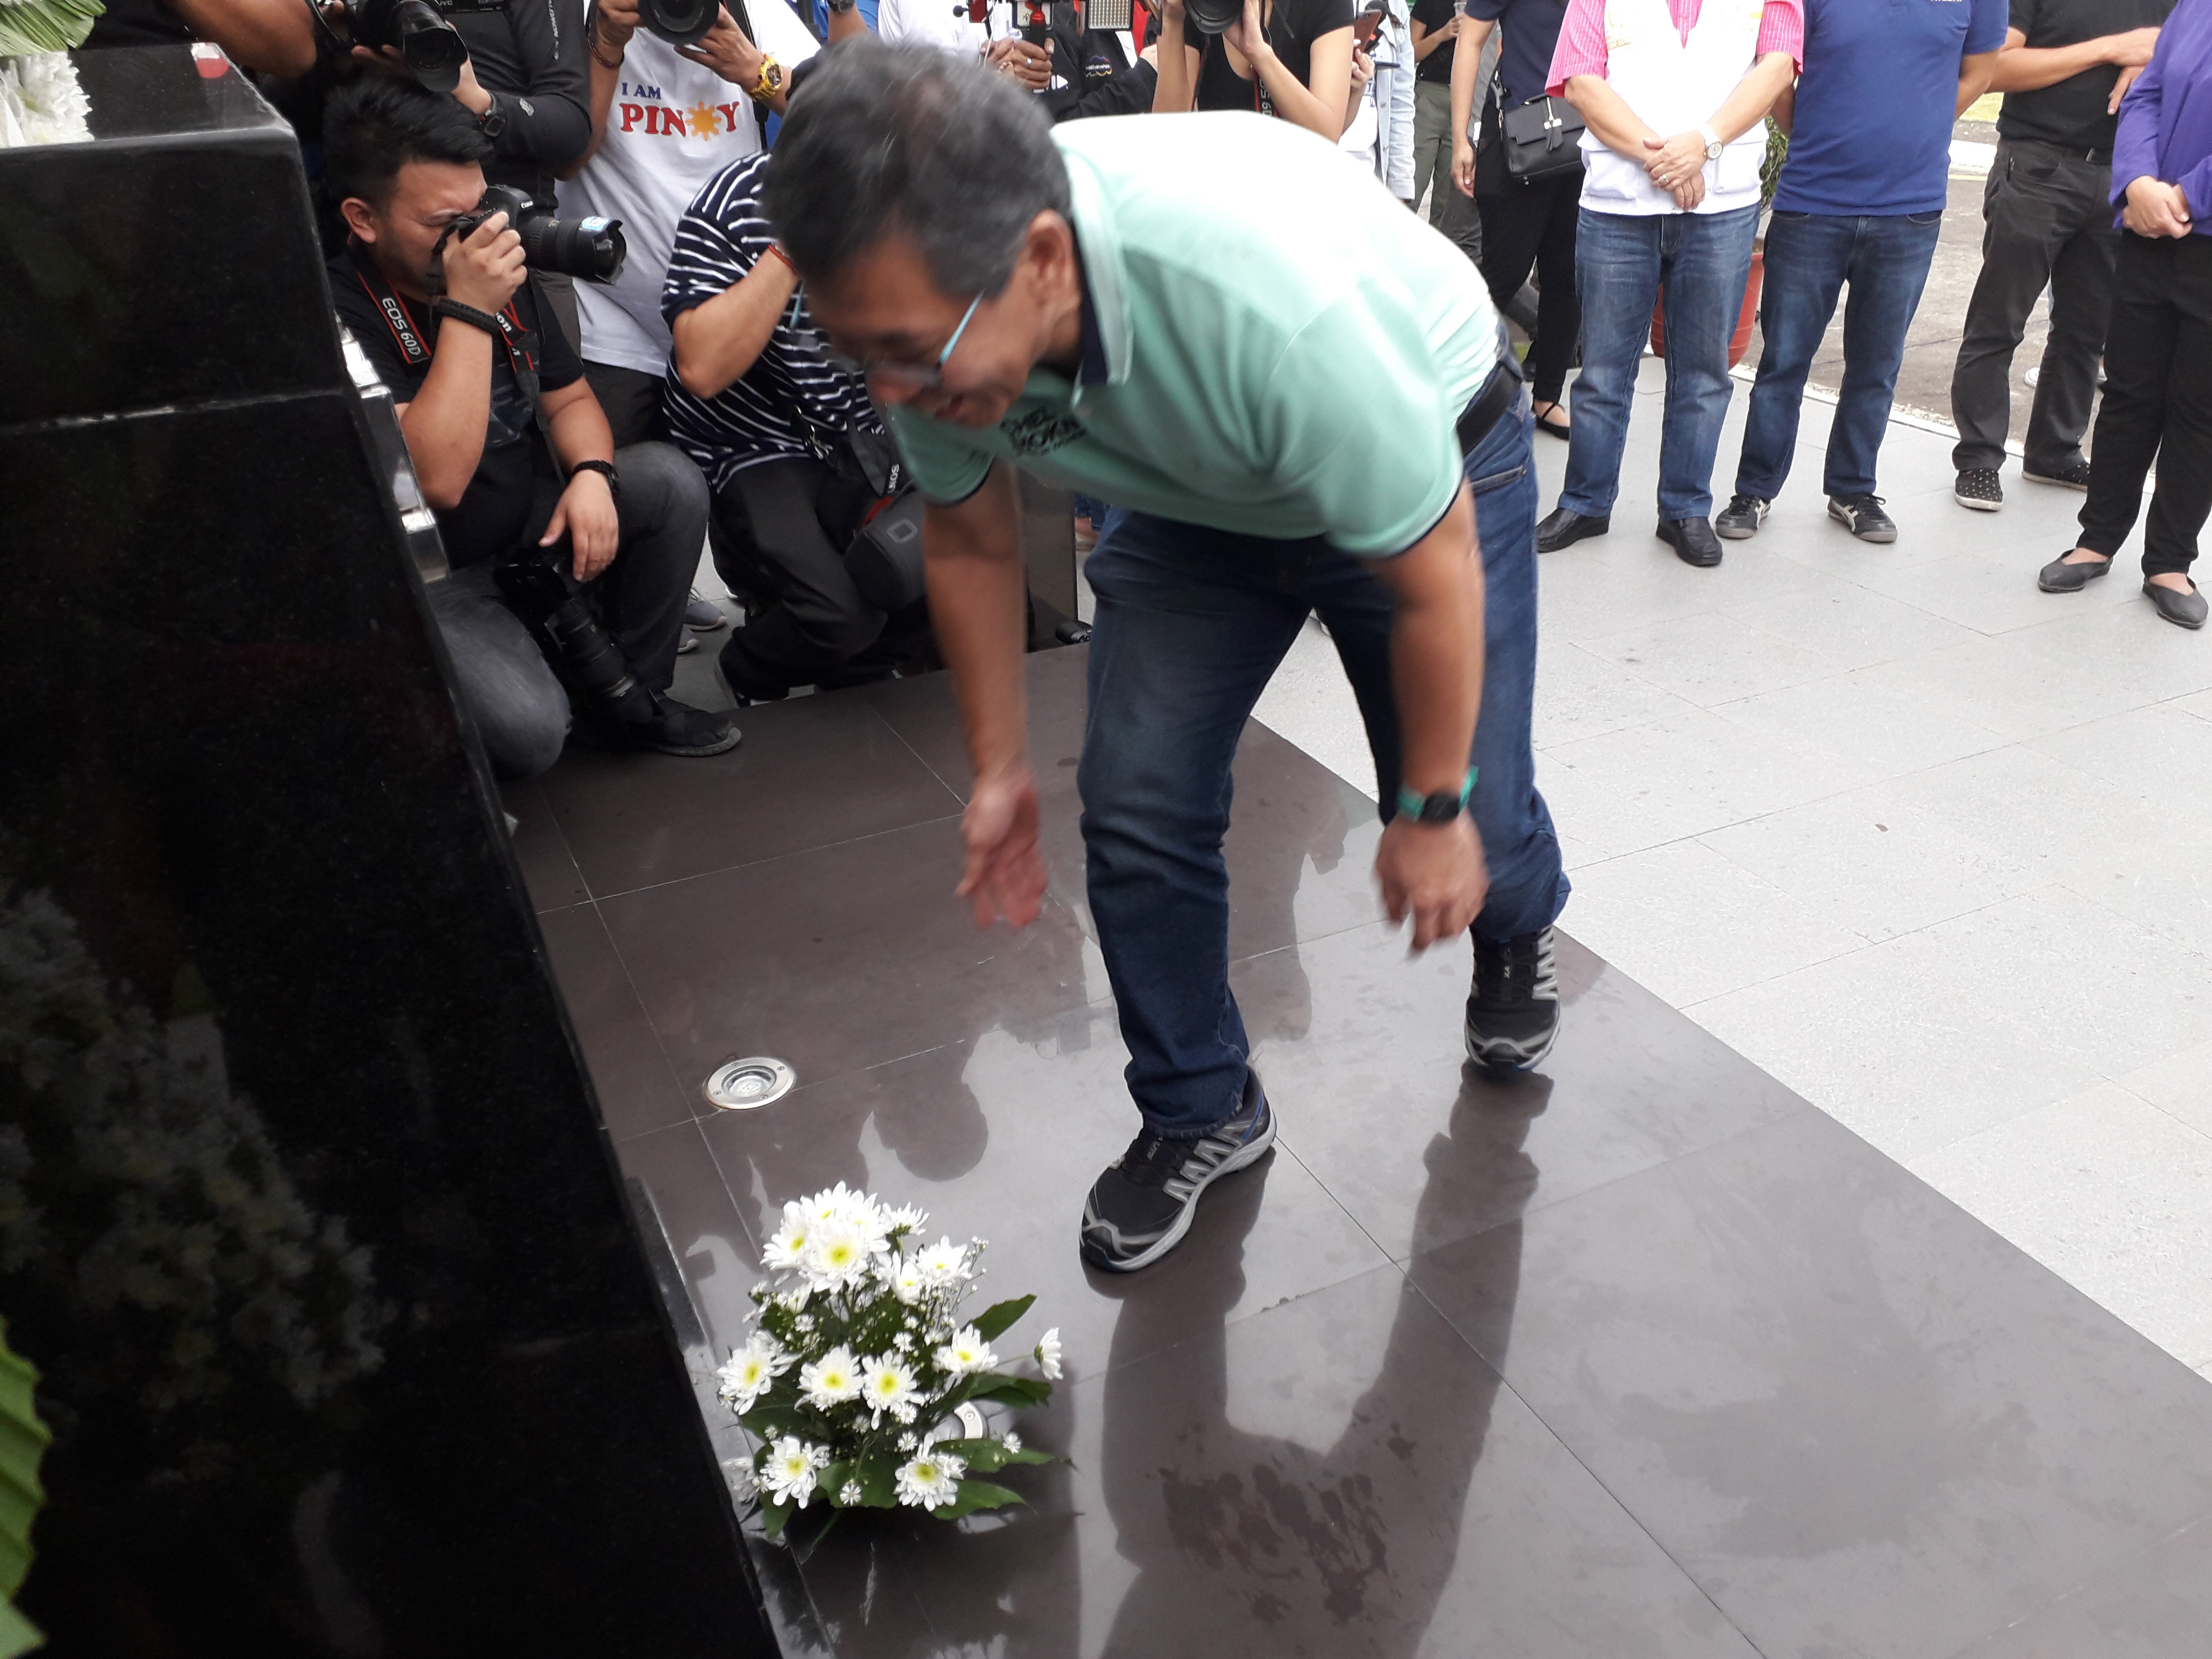 OFFERING. Human rights lawyer Chel Diokno offers flowers for the late Jesse Robredo. Photo by Mara Cepeda/Rappler